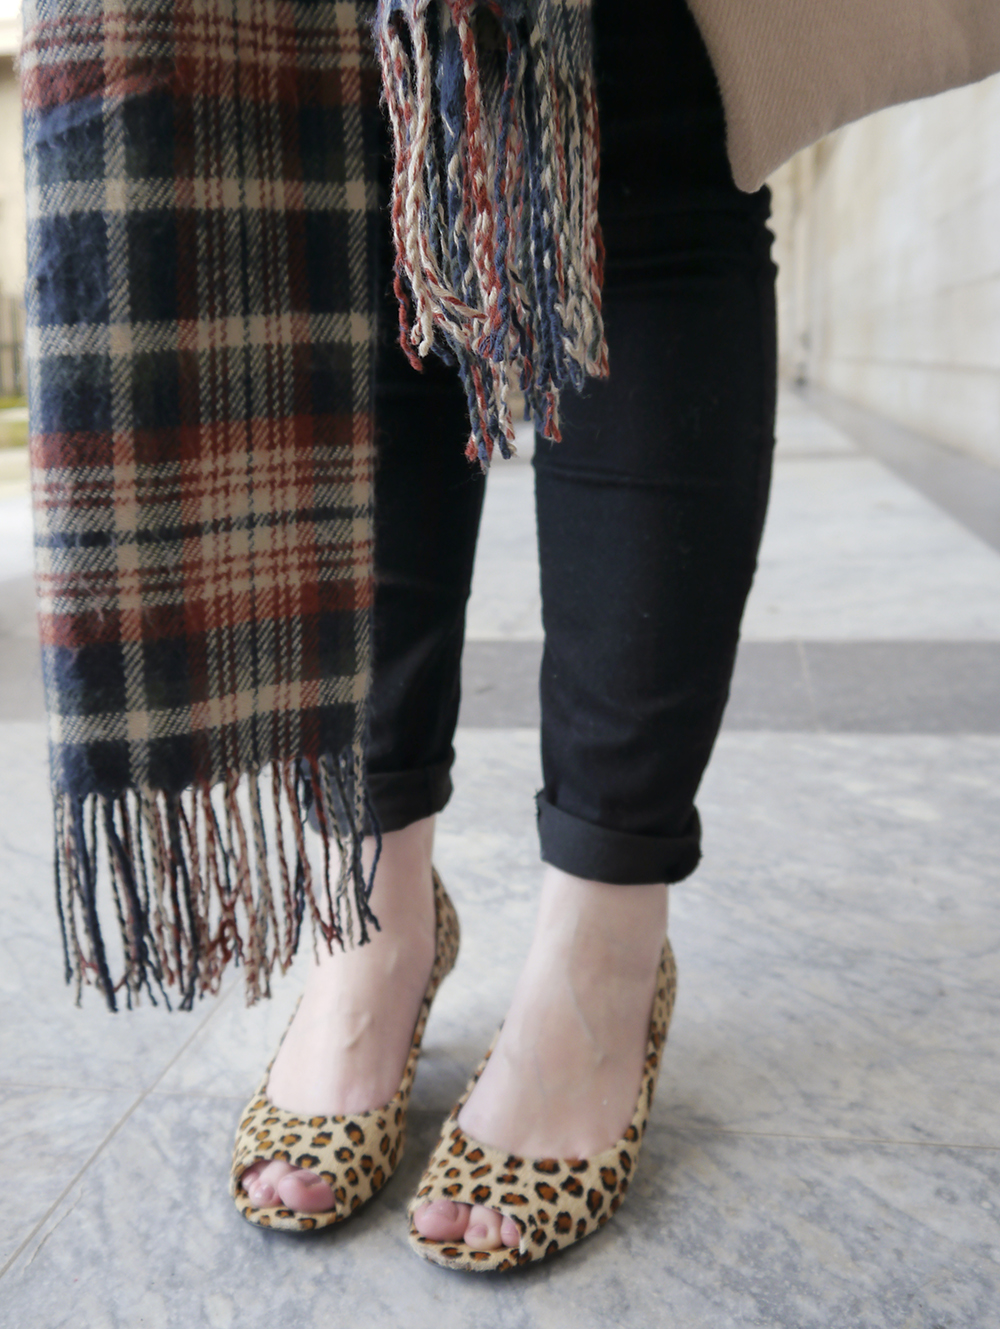 oasis camel coat, tartan scarf style, IOLLA glasses, Caird Hall Dundee, #dundeebloggers, Scottish fashion blogger, leopard print peeptoe shoes, lou lous vintage fair, how to style tartan, leopard print